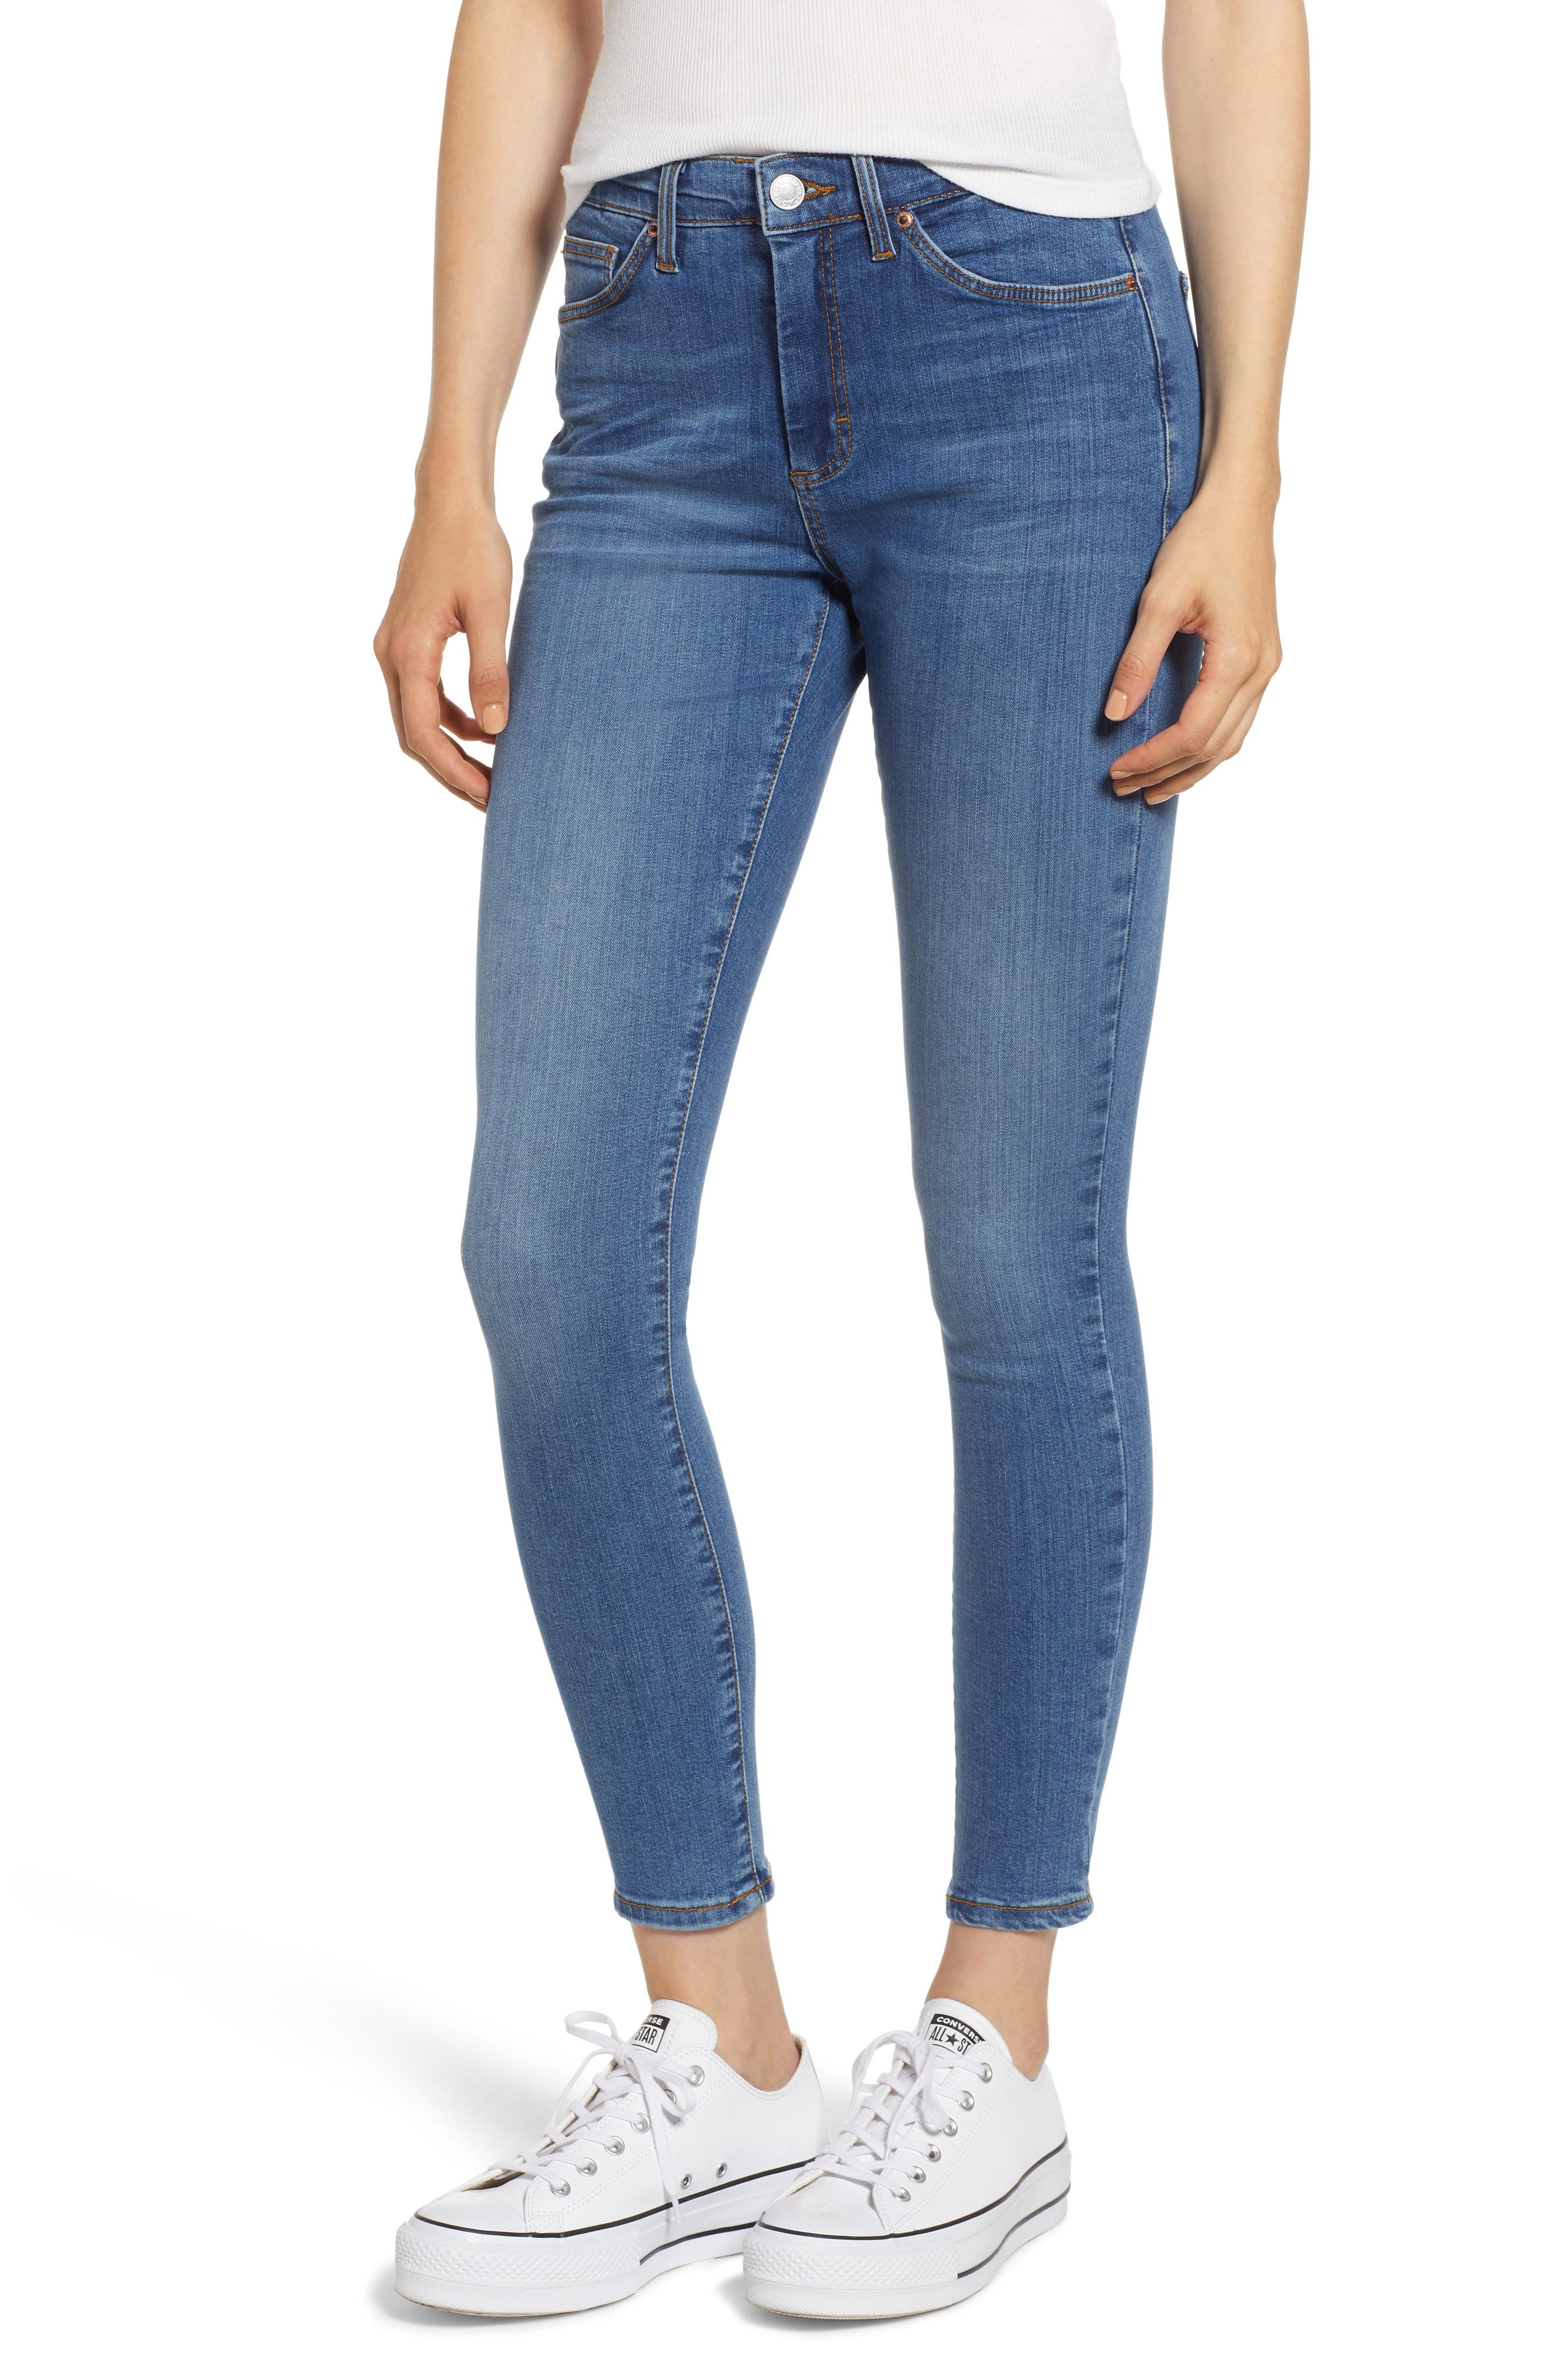 MOTO Sidney Stretch Skinny Jeans,                             Main thumbnail 1, color,                             Mid Stone